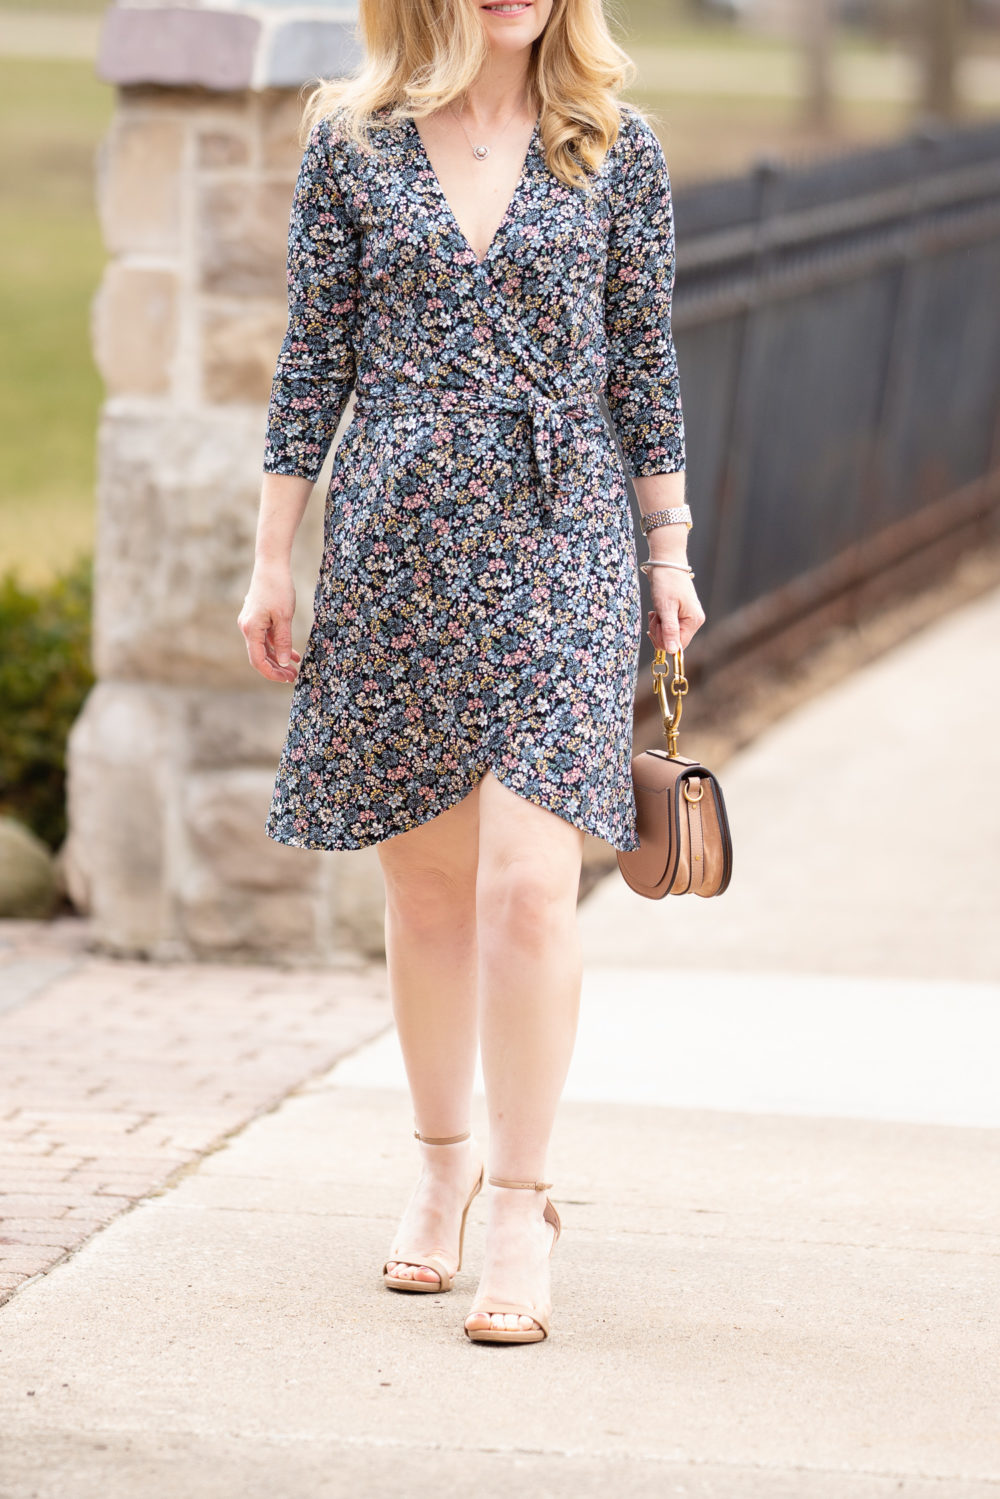 Petite Fashion Blog | Loft Floral Wrap Dress | Chloe Nile Satchel | Steve Madden Stecey Sandals